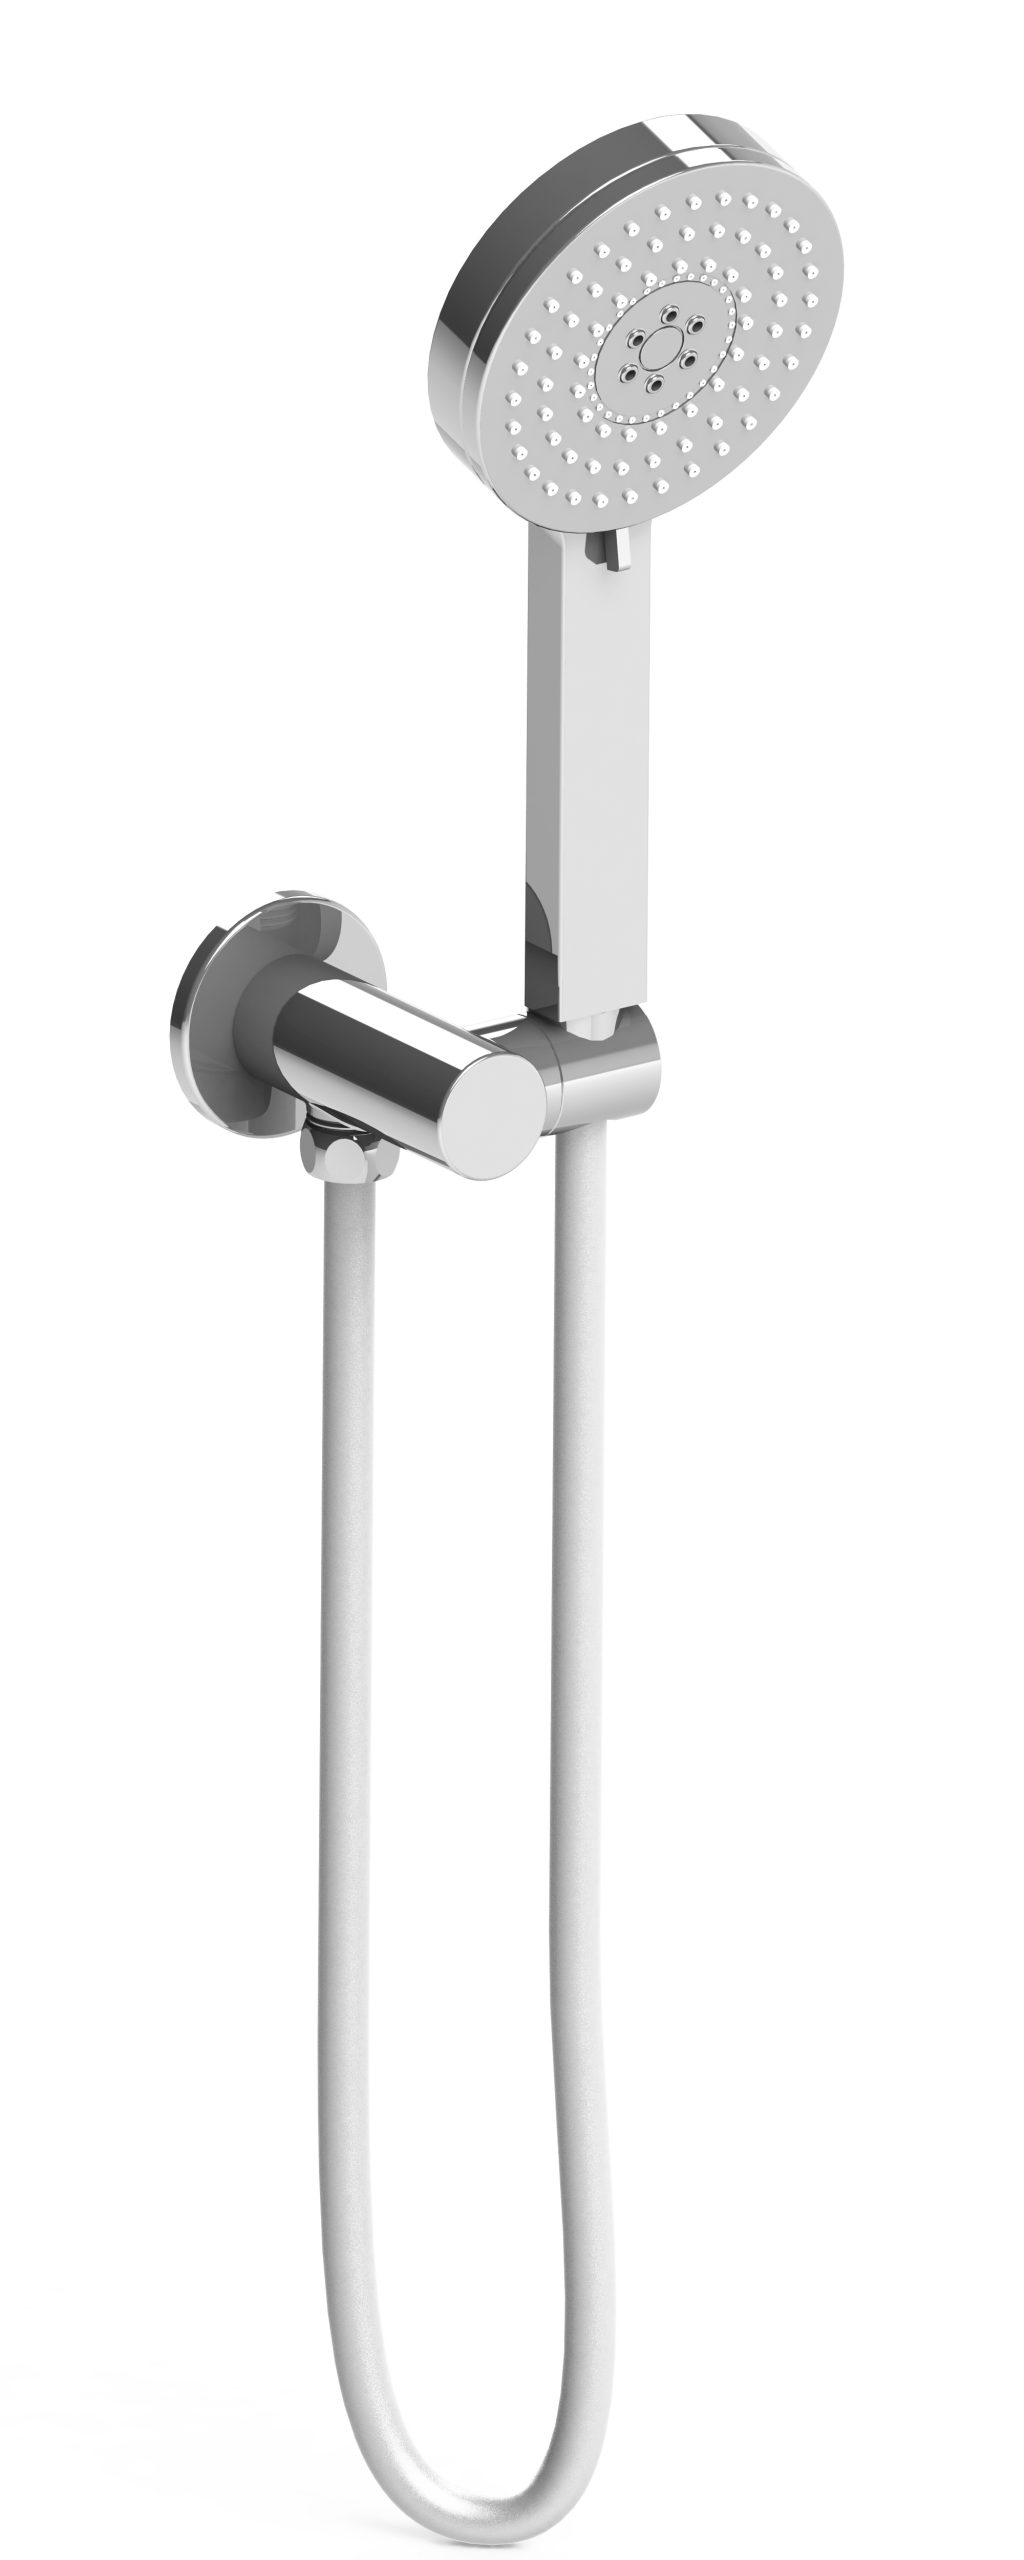 Harmony Senza Muli Function Hand Shower Chrome